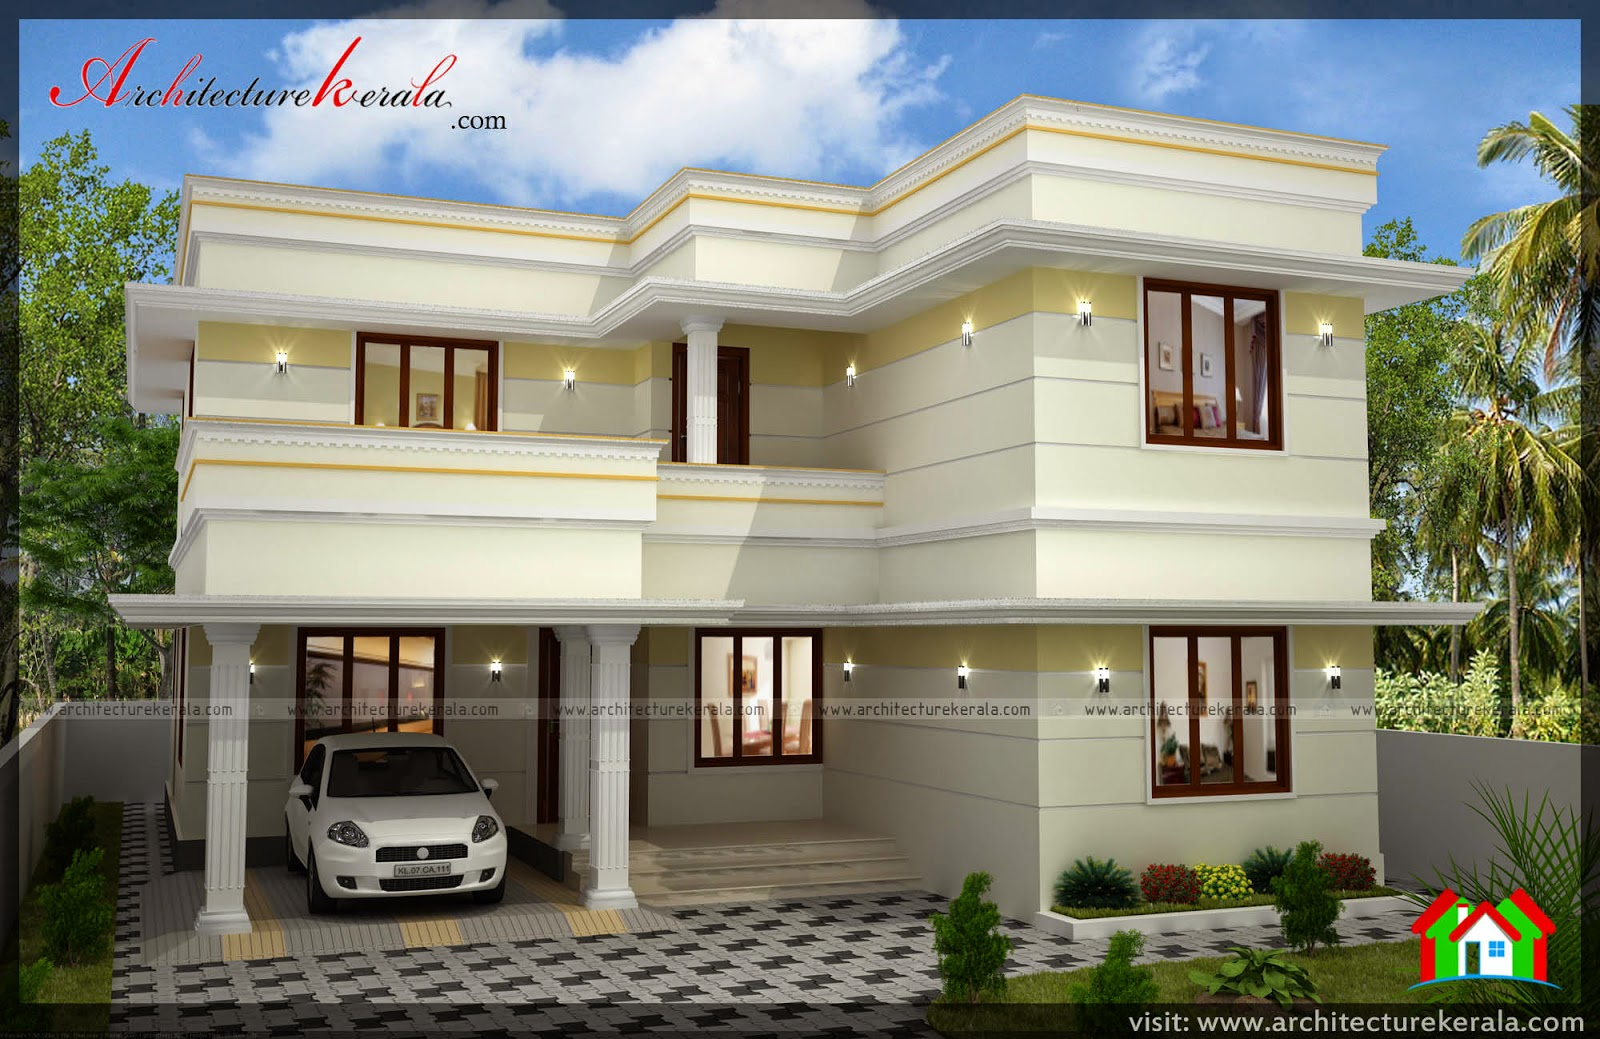 Double storey architectural designs modern house for Double g architecture